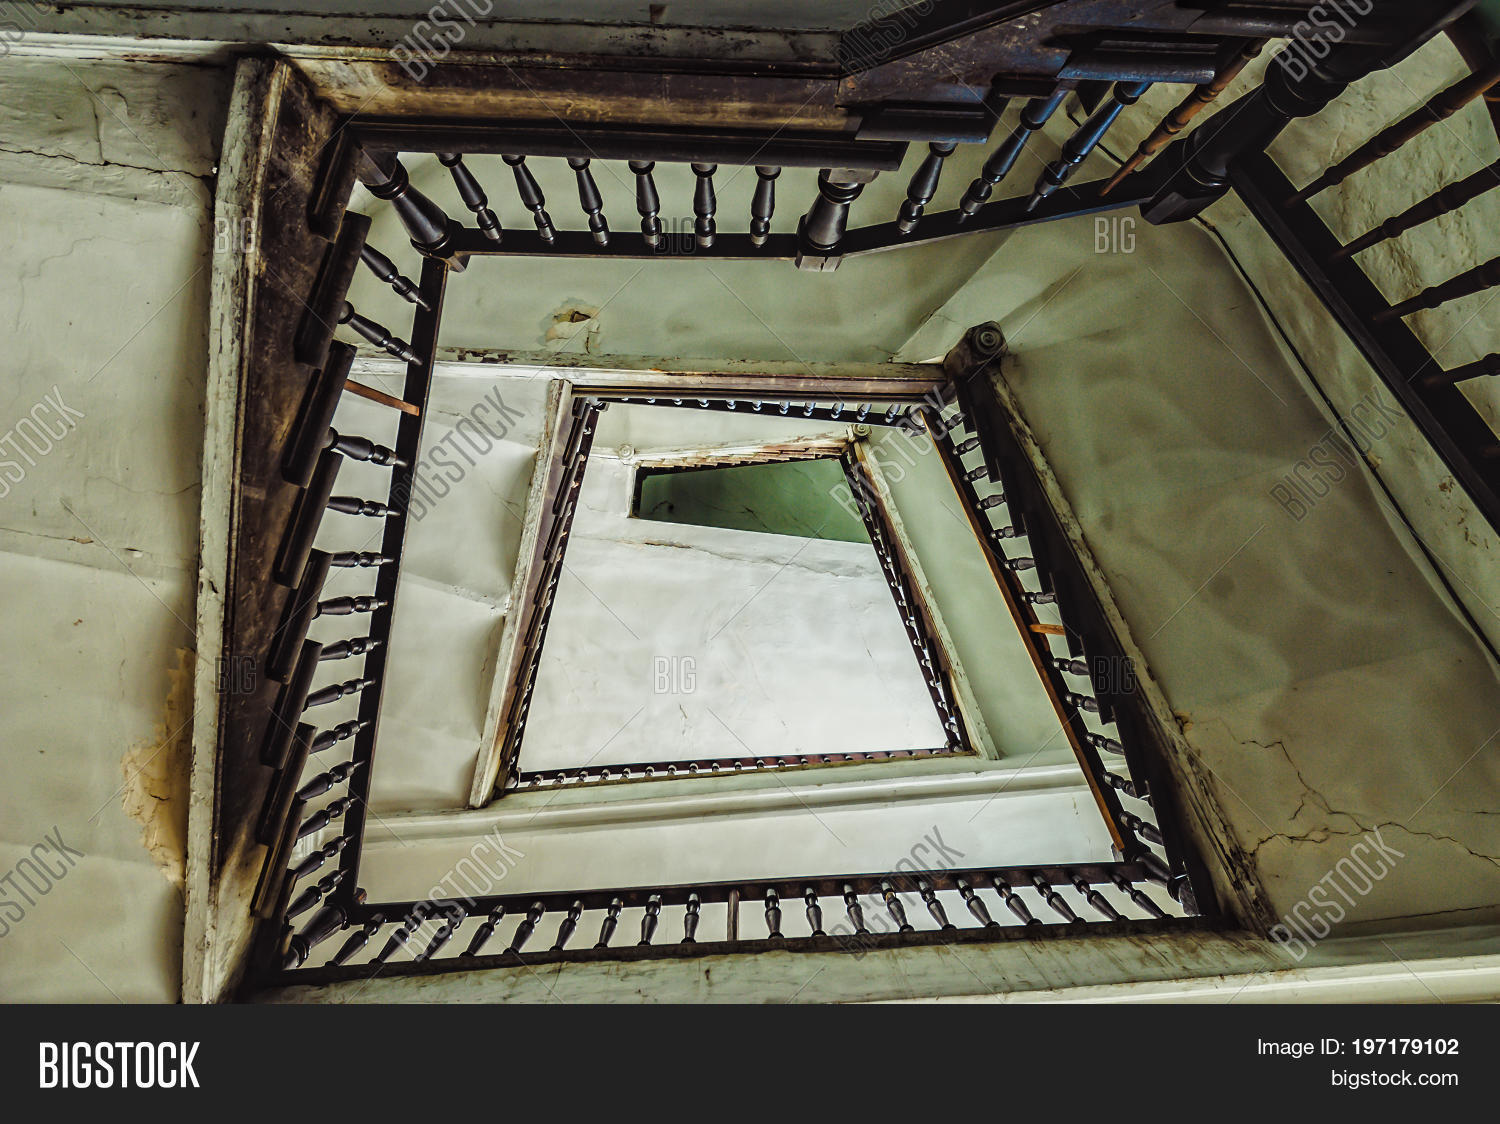 Square Spiral Staircase In Old Building. Upside View Antique Architecture  Background.